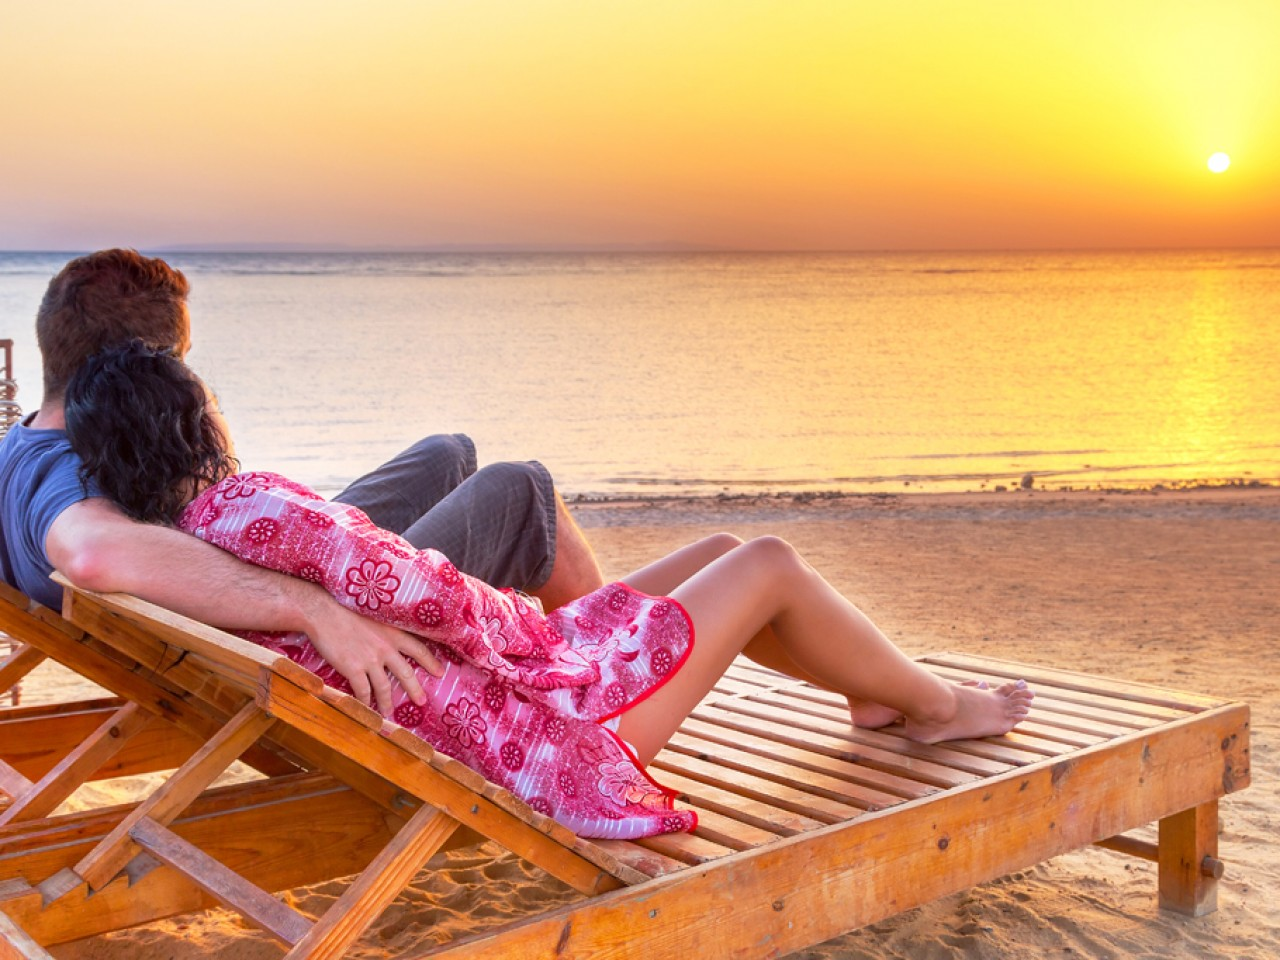 RELAX AND RECONNECT: Steigenberger ALDAU, Hurghada